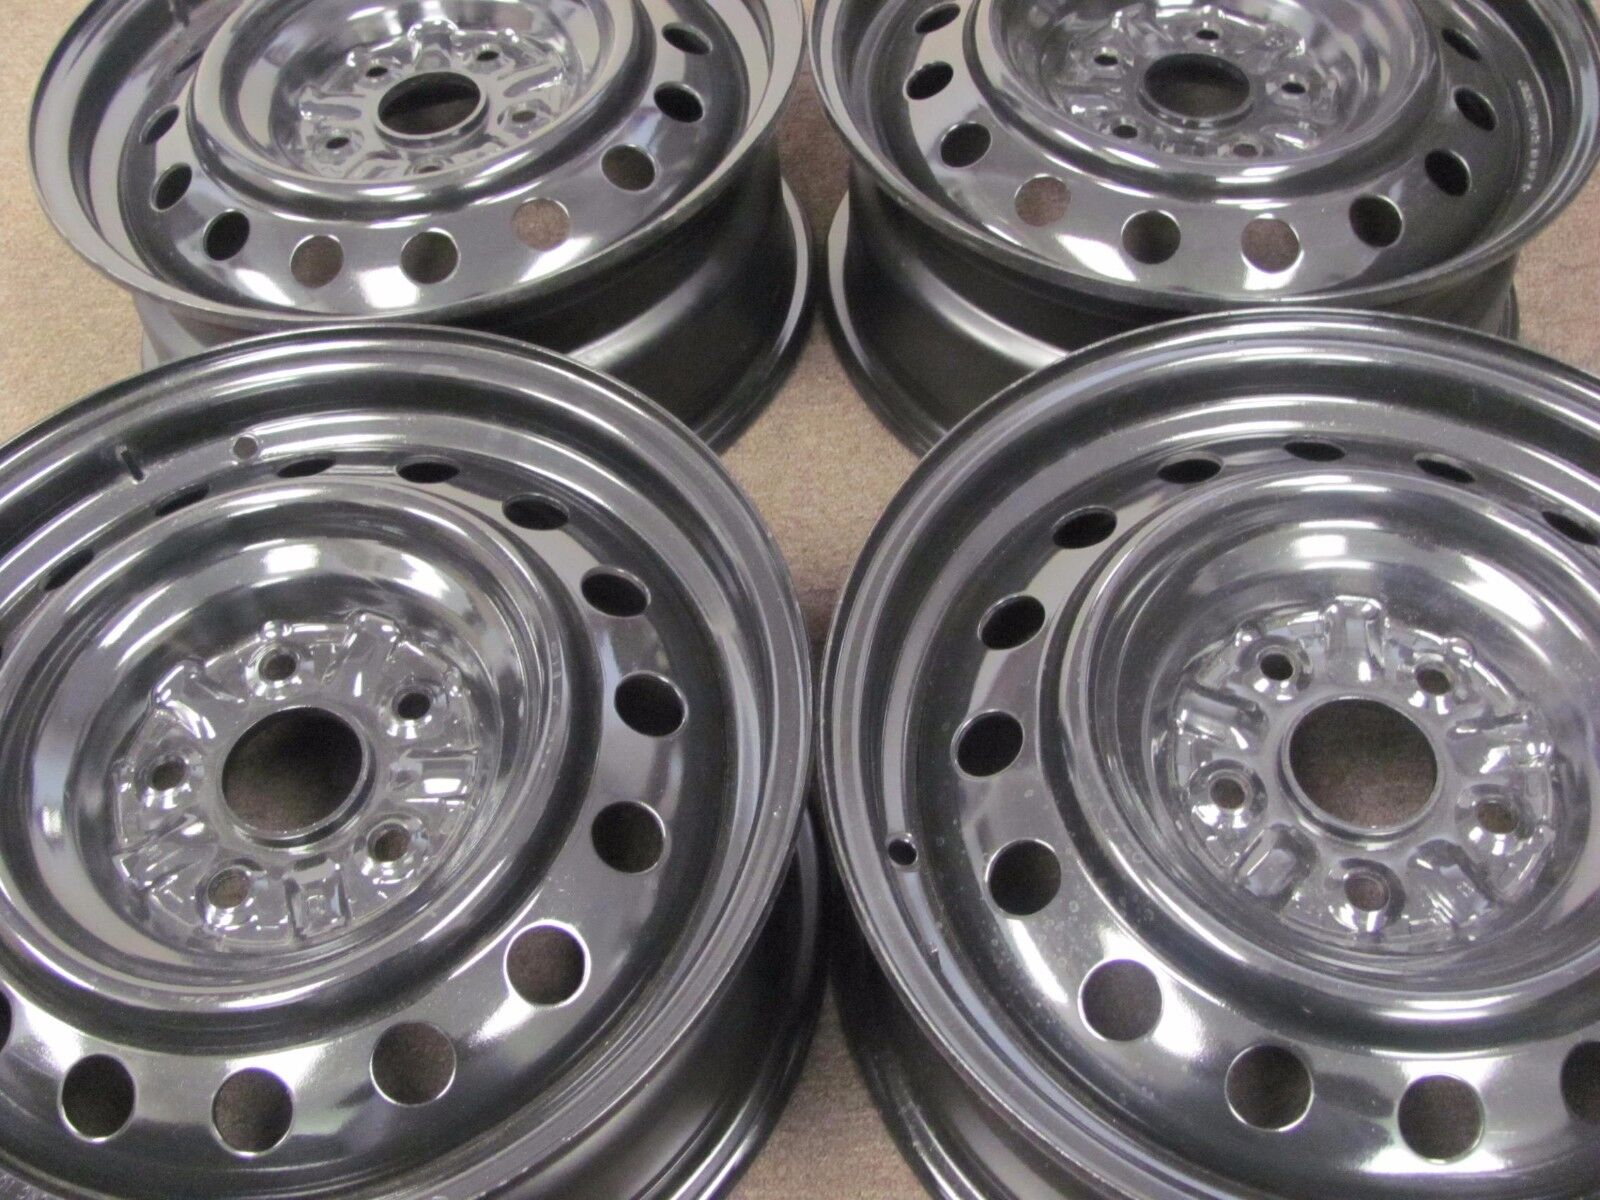 Used Toyota Camry Wheels For Sale With Bbs Rims 16 Avalon Sienna Solara Oem Steel 16x6 1 2 2002 2006